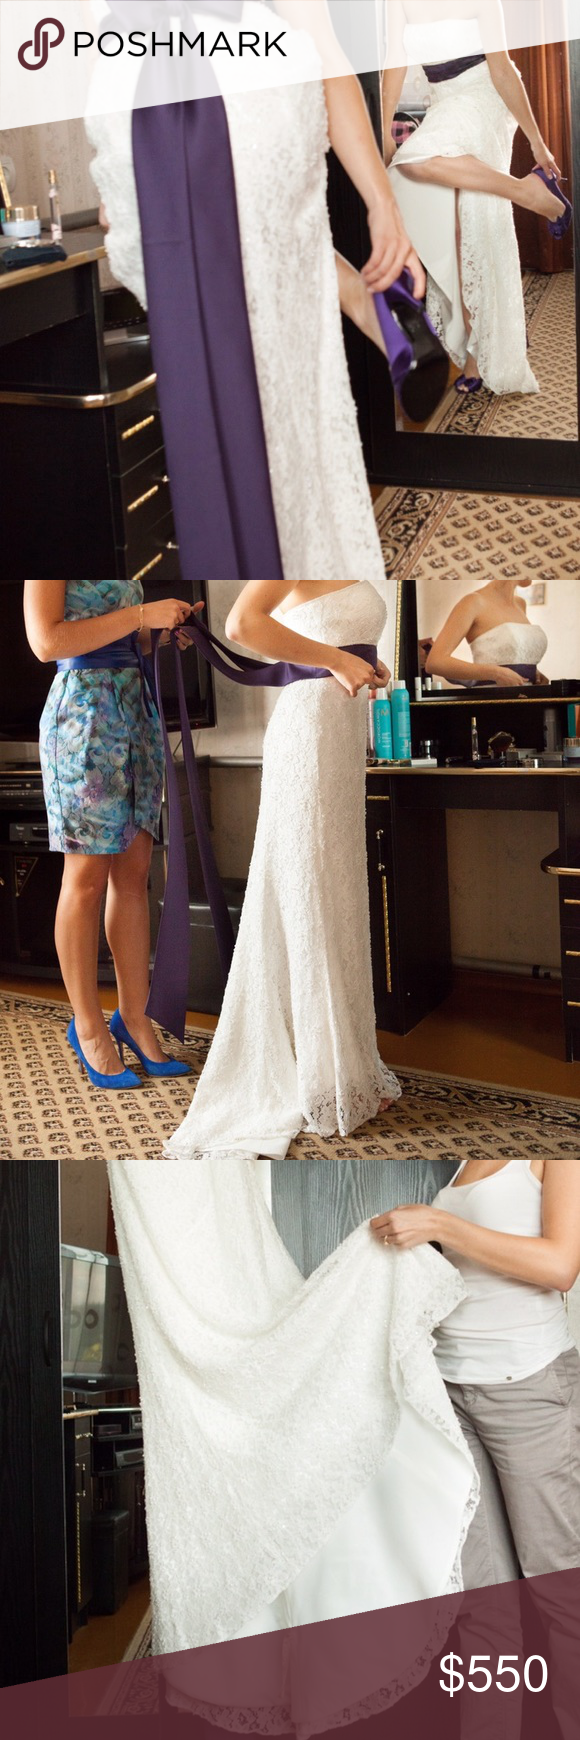 Wedding dress dry cleaning near me  Wedding dress   Purple shoes Dry cleaning and